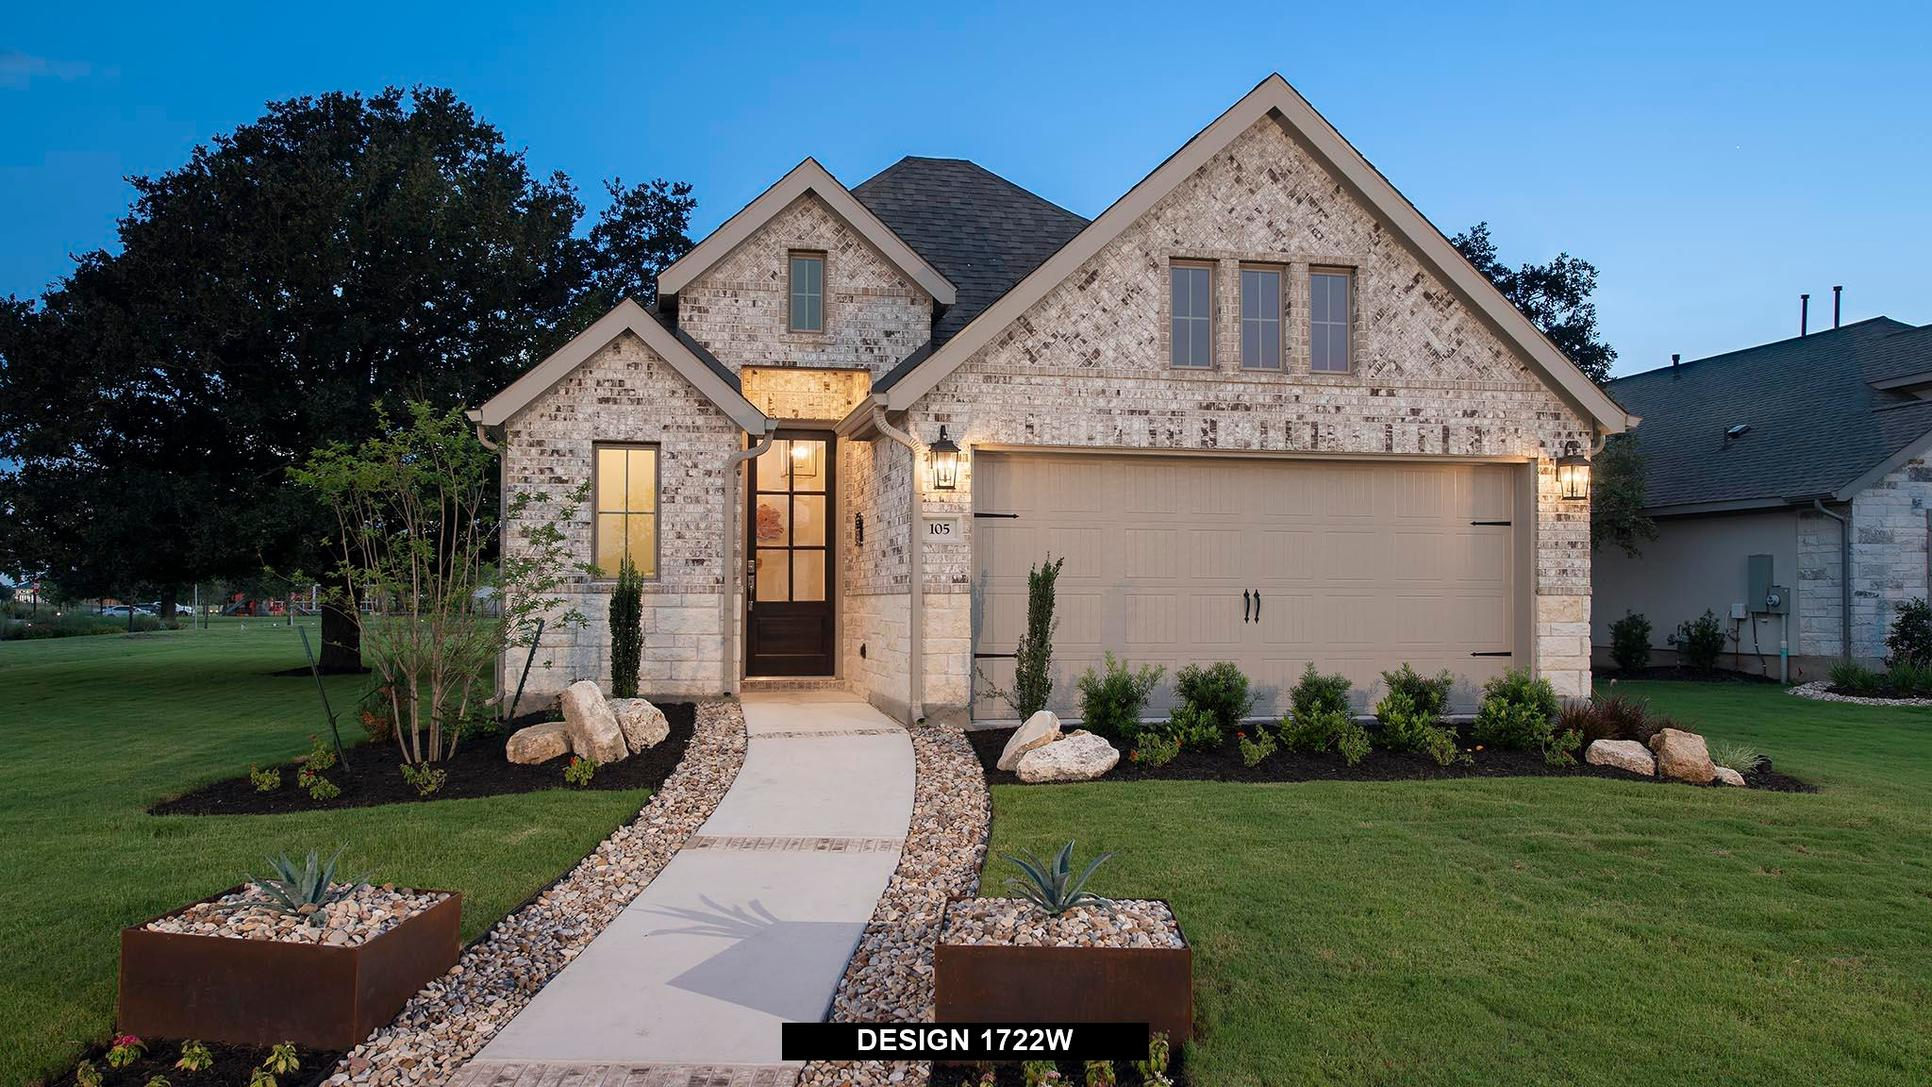 Plan 1722W:Representative photo.  Features and specifications may vary by community.